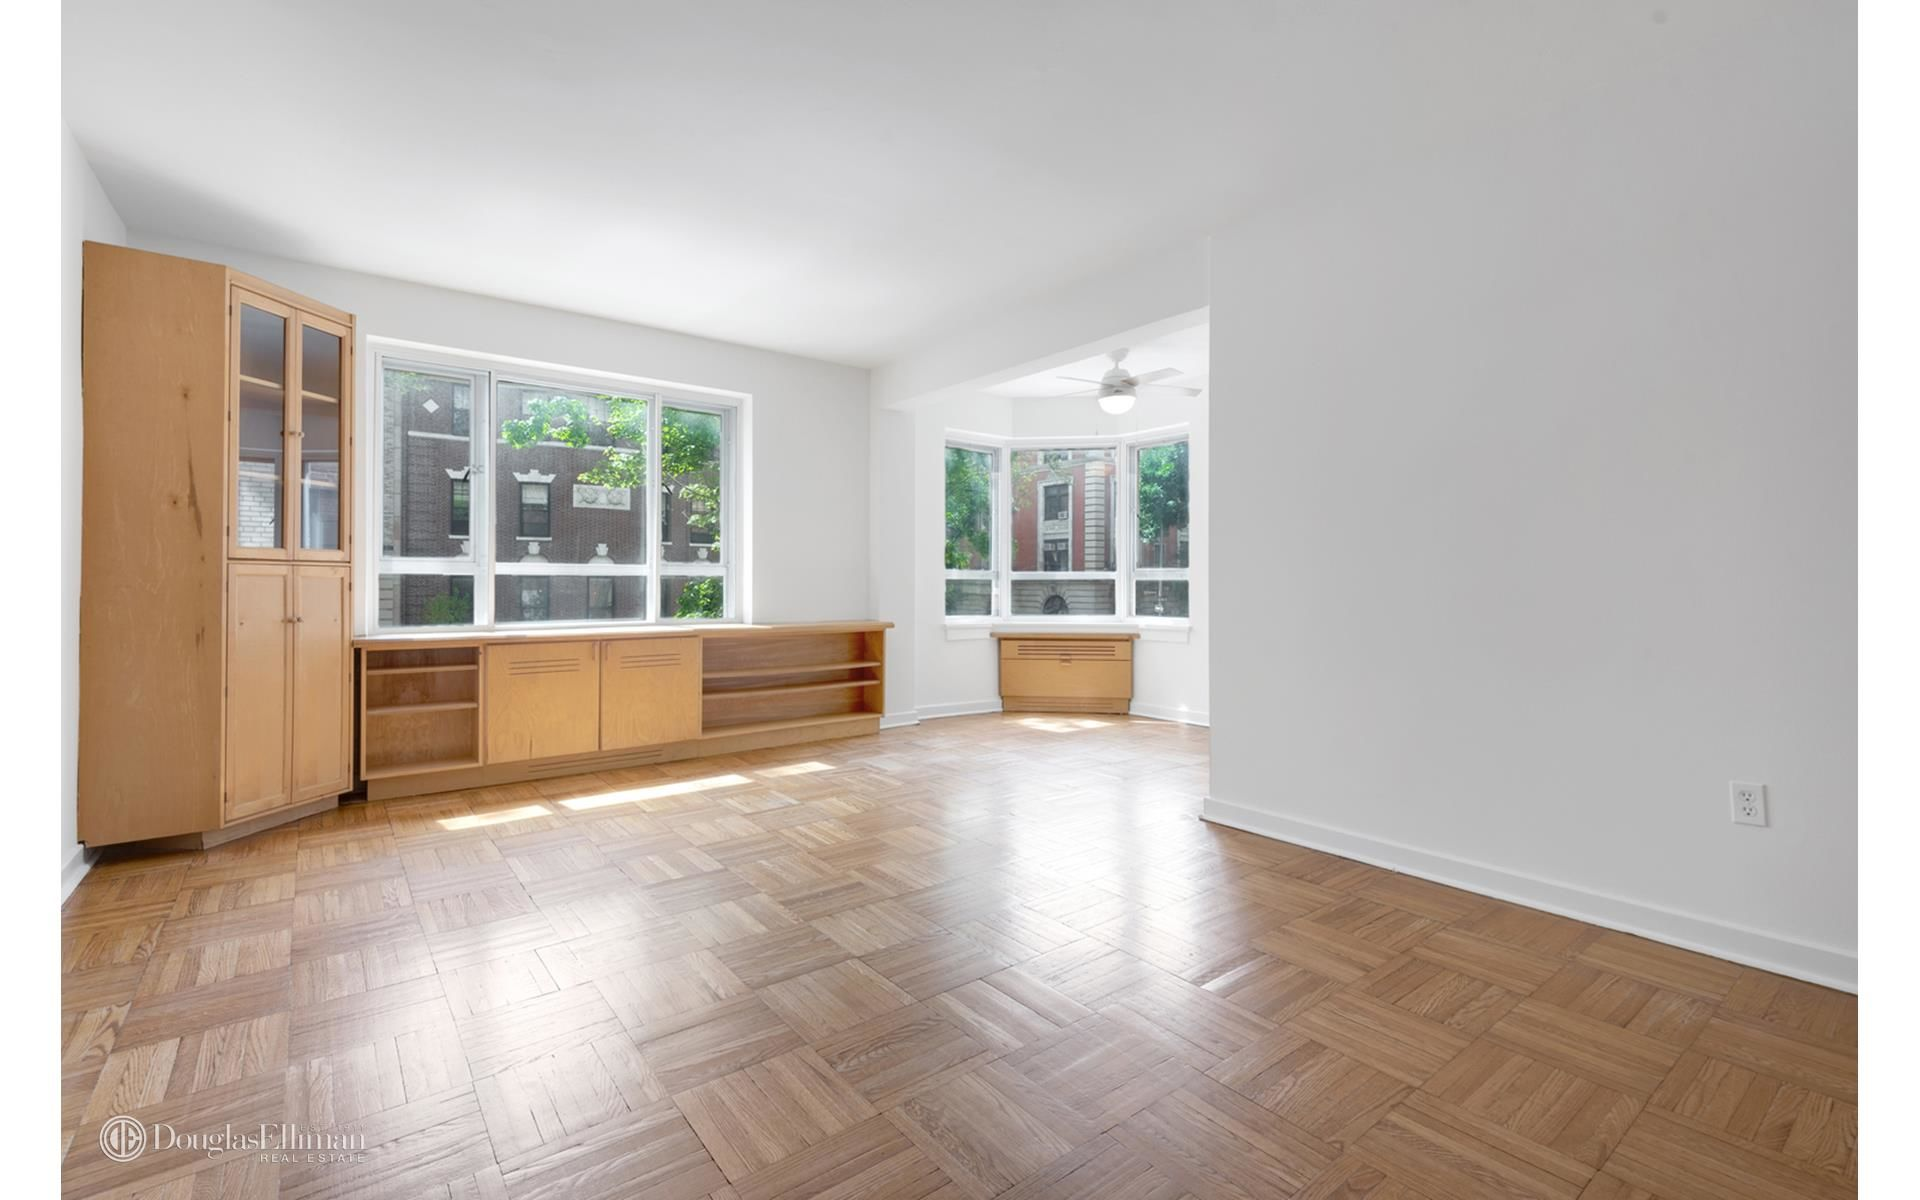 130 8th Ave, APT 2A Photo 5 - ELLIMAN-3787631